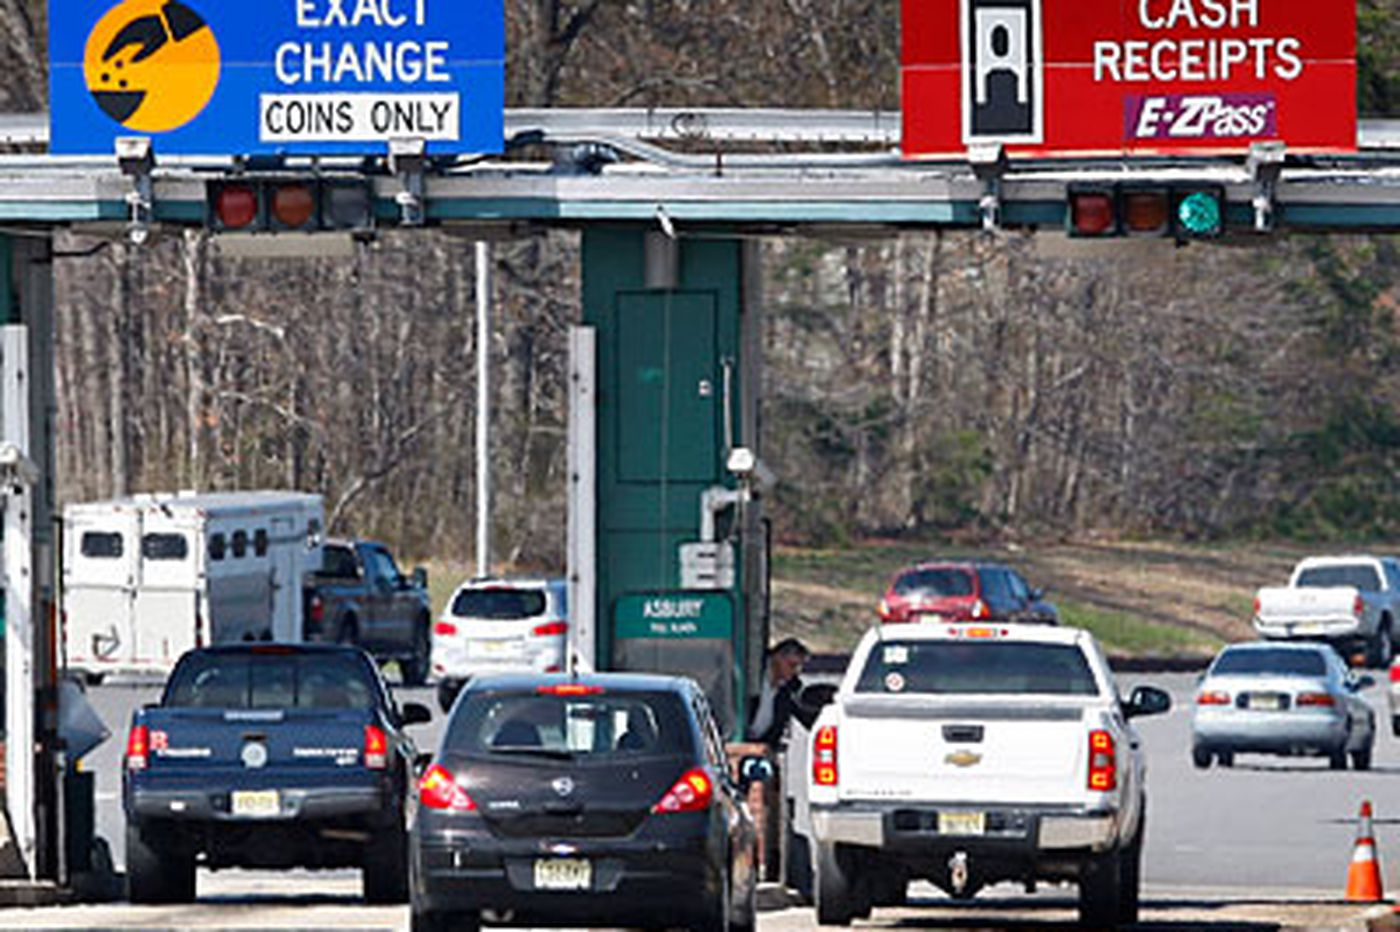 As bells toll in the new year, N.J. road tolls will rise